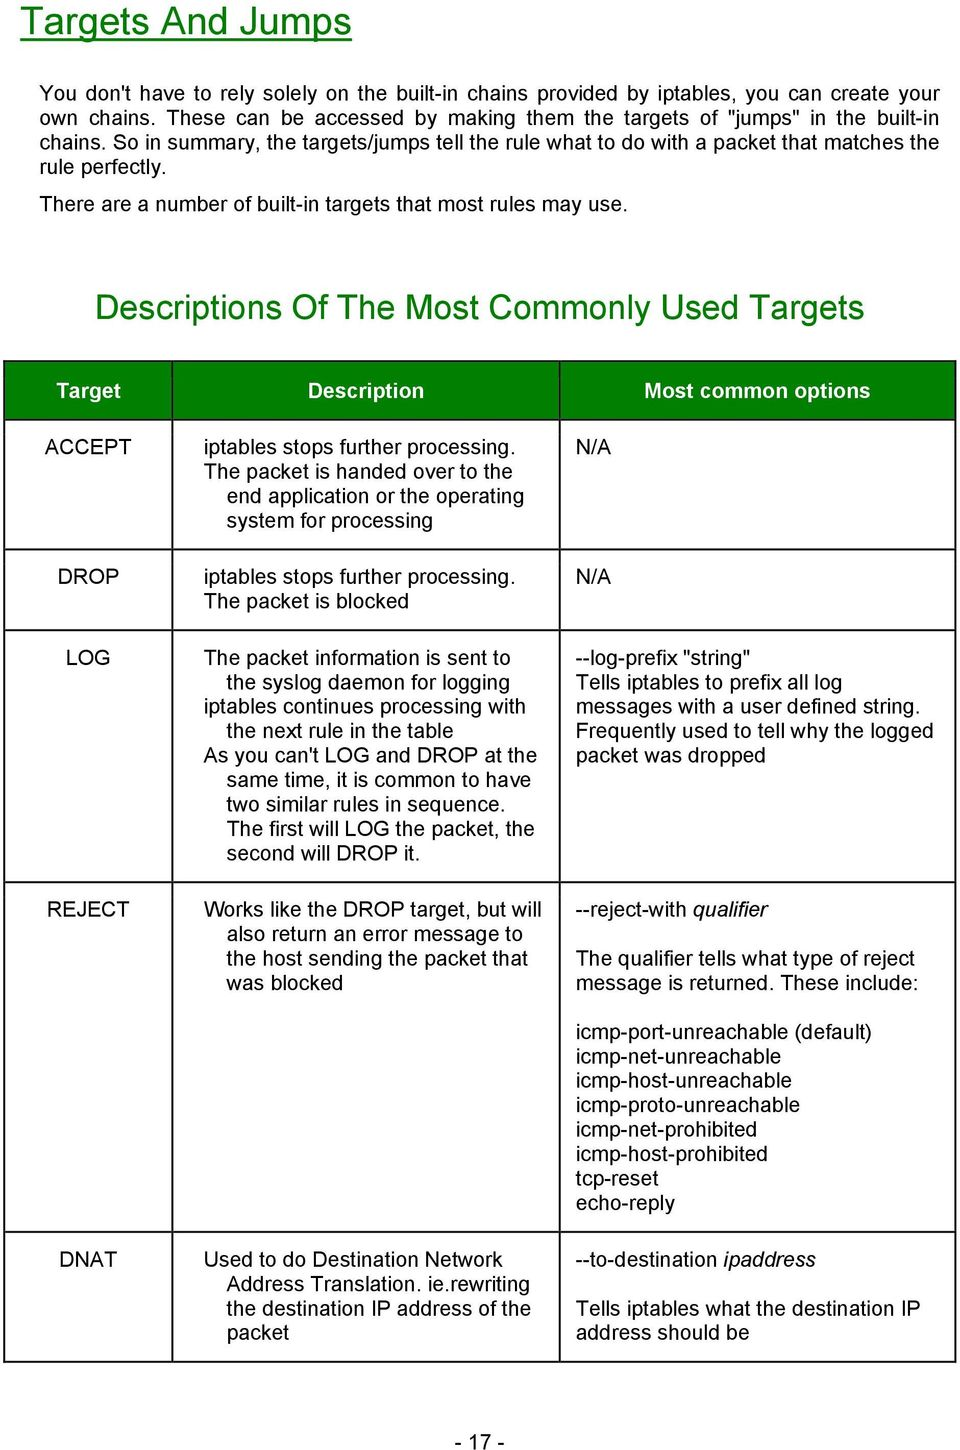 There are a number of built-in targets that most rules may use.